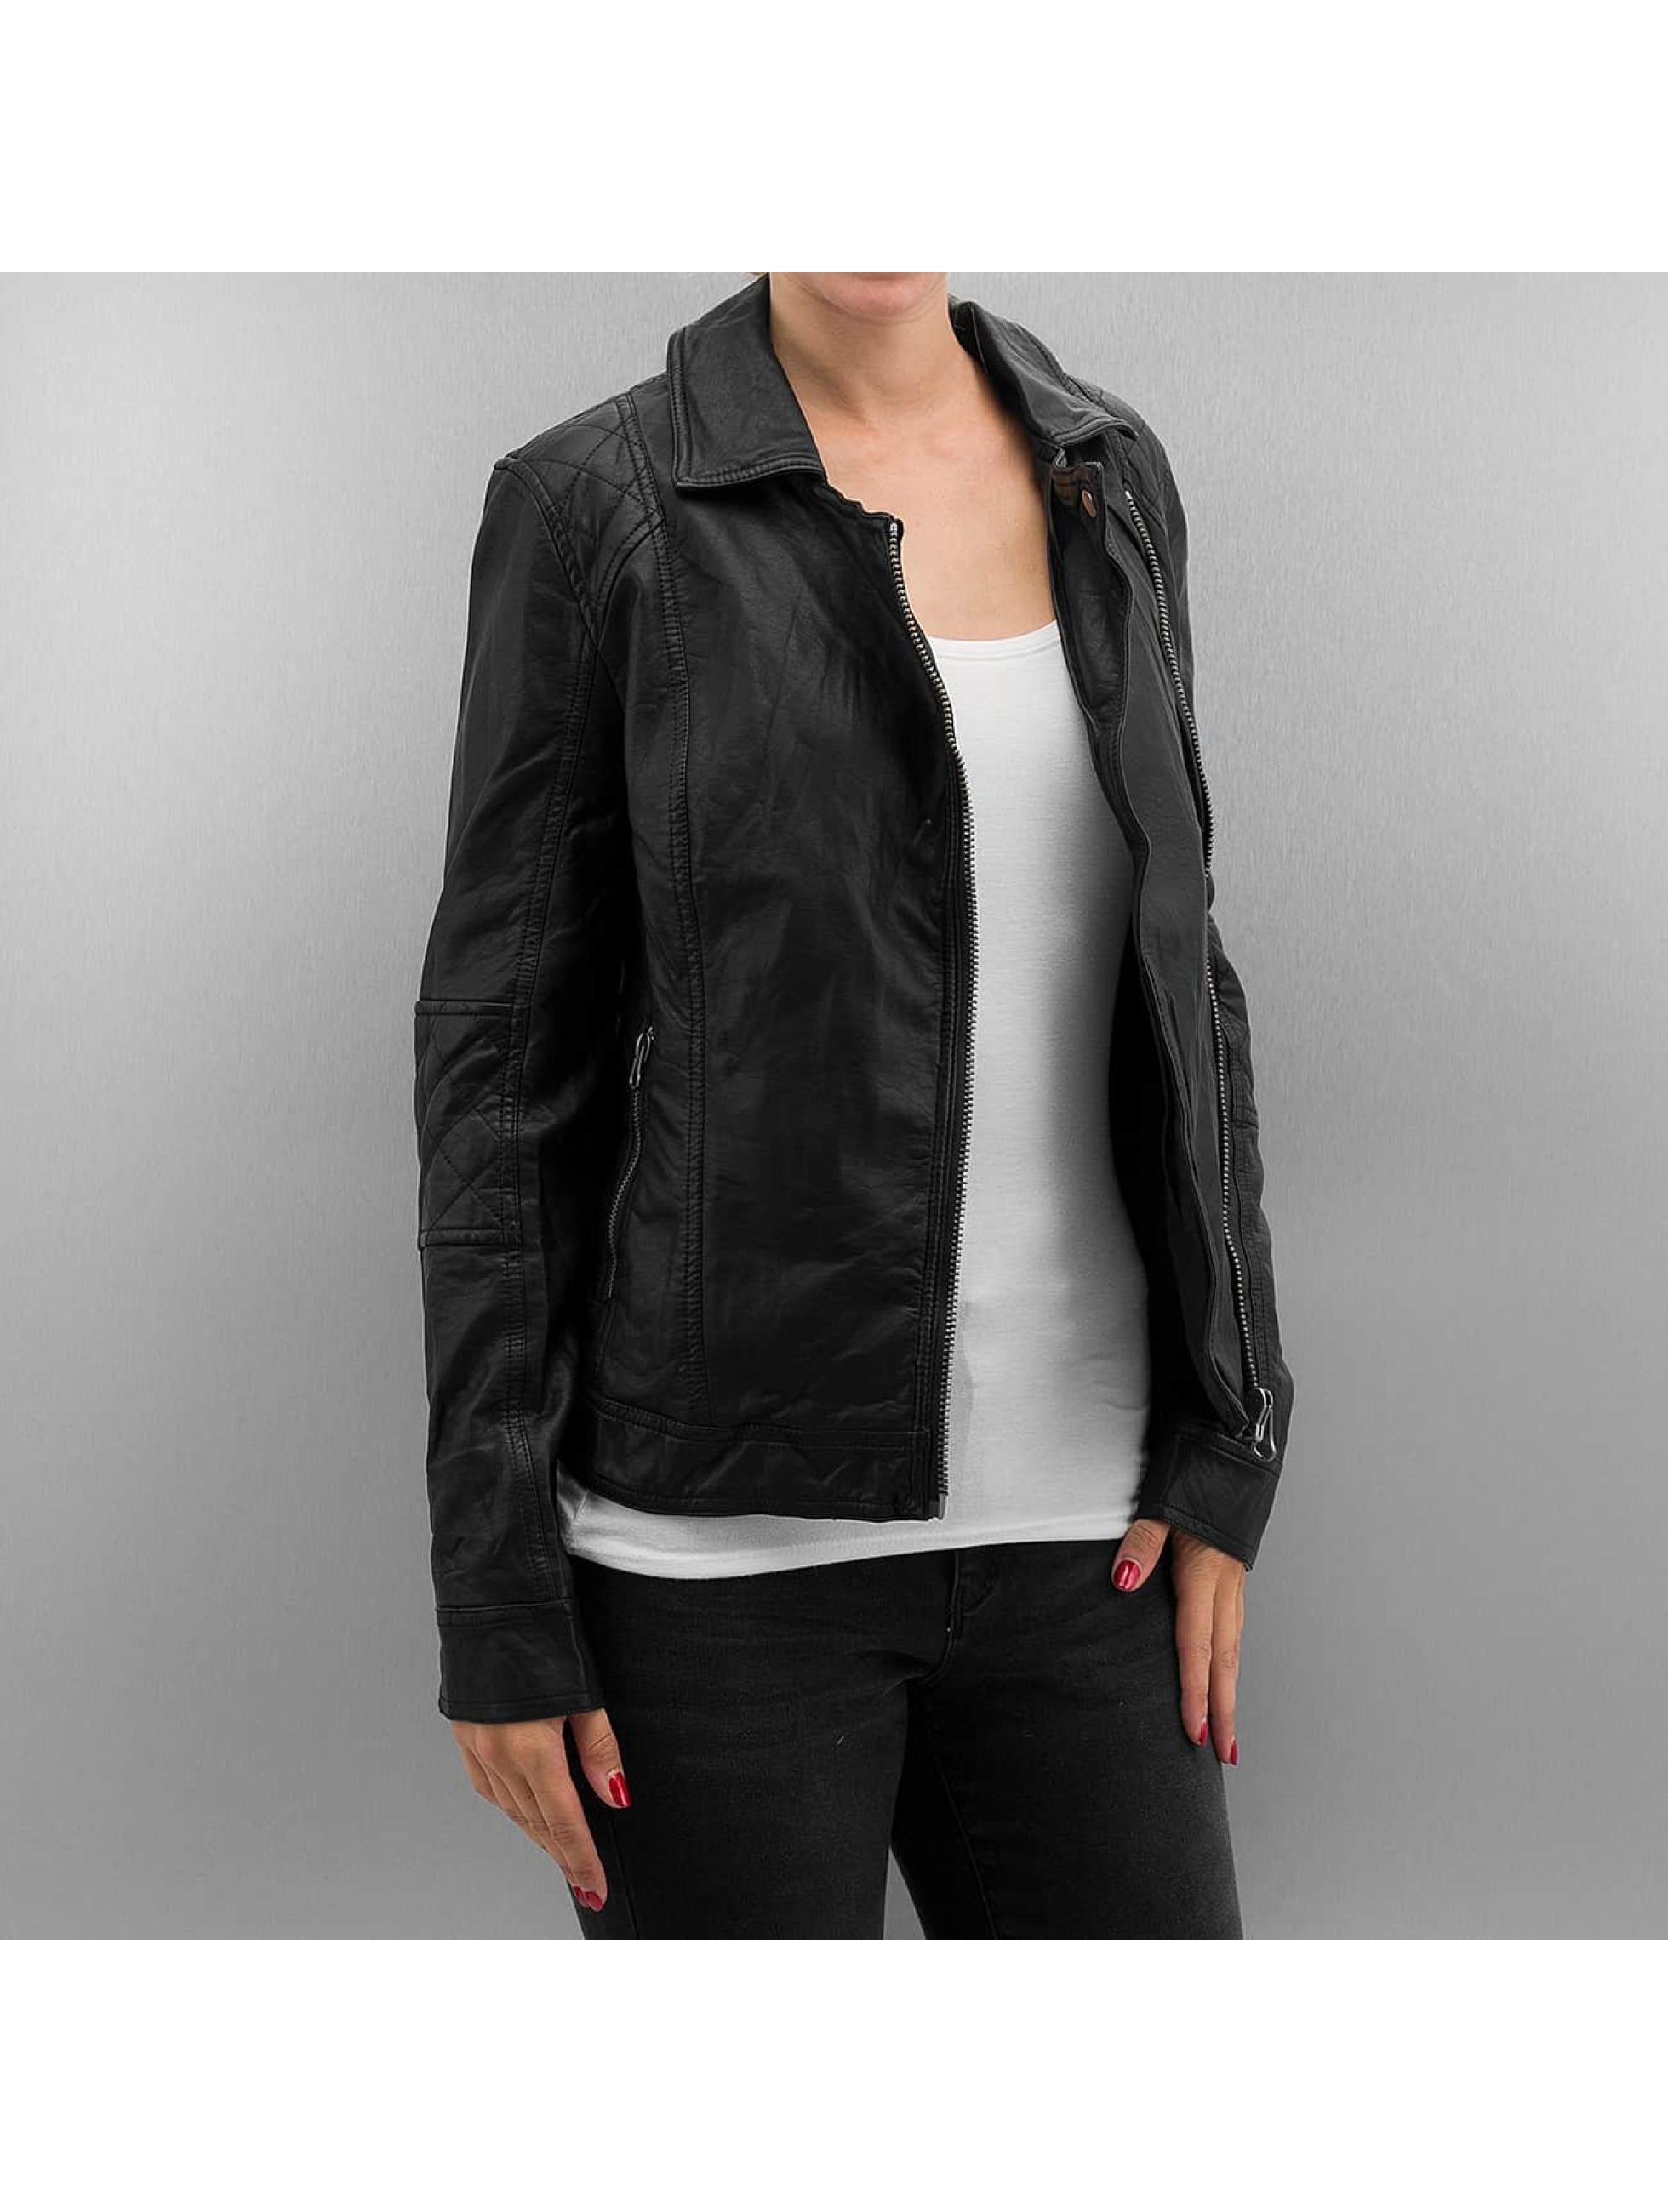 Urban Classics Veste mi-saison légère Ladies Leather Imitation Biker noir